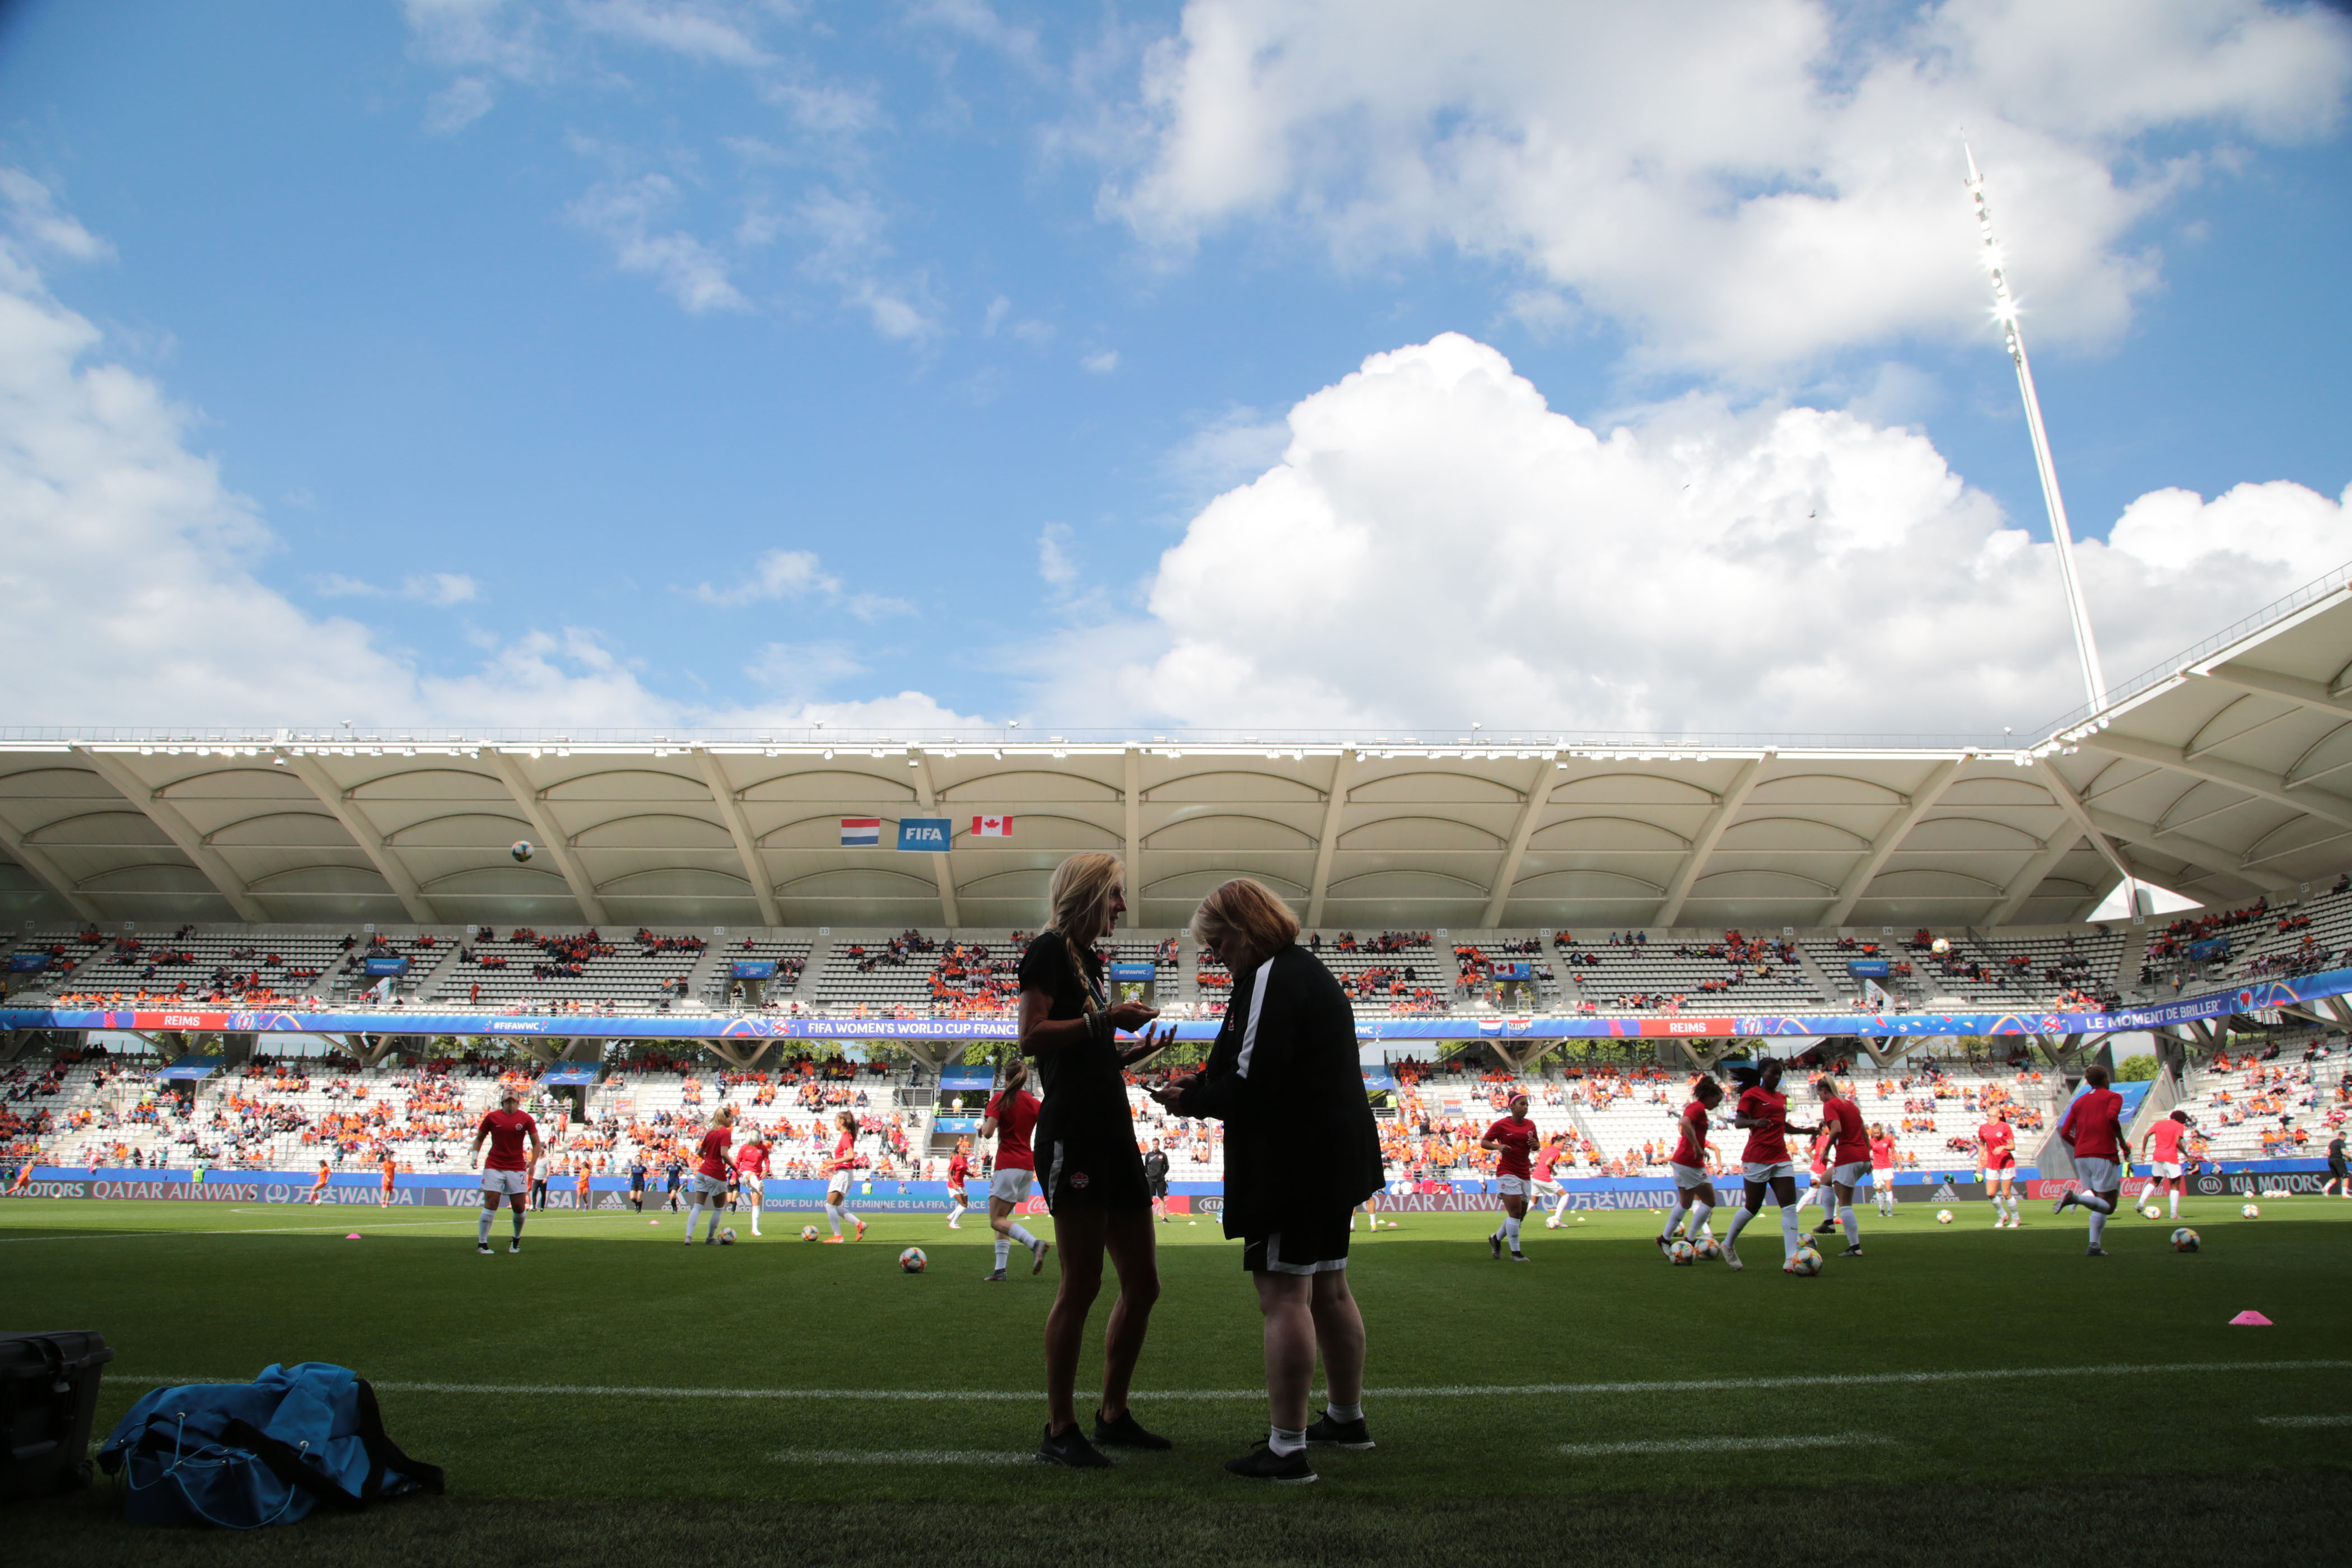 20190620_CANWNT_Ching54